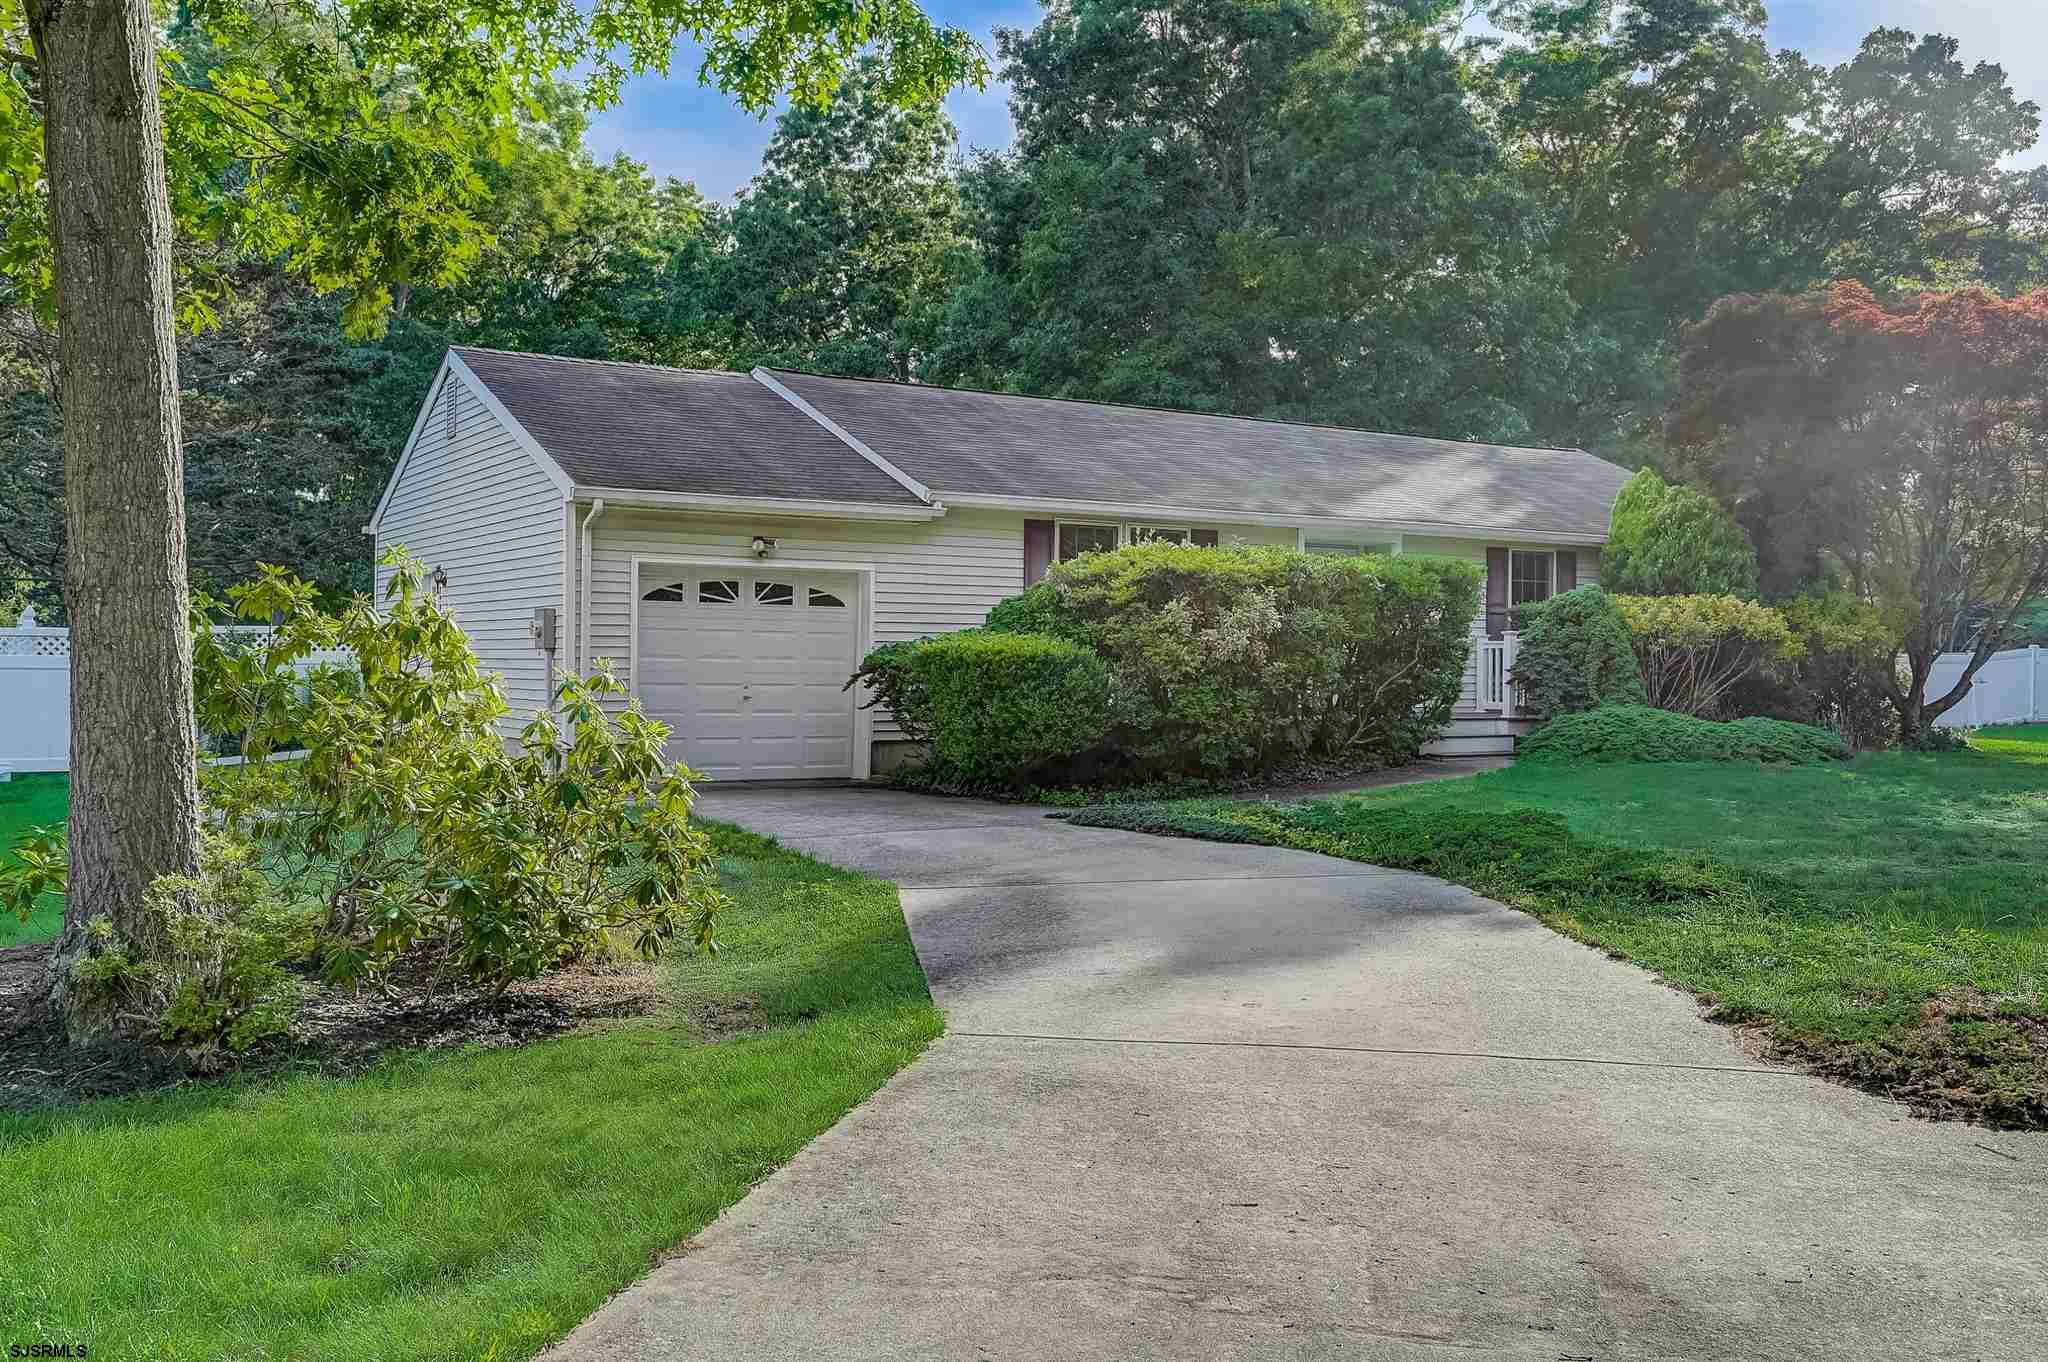 This Ranch style home features a magnificent enclosed porch/family room with 21 tilt-in windows over